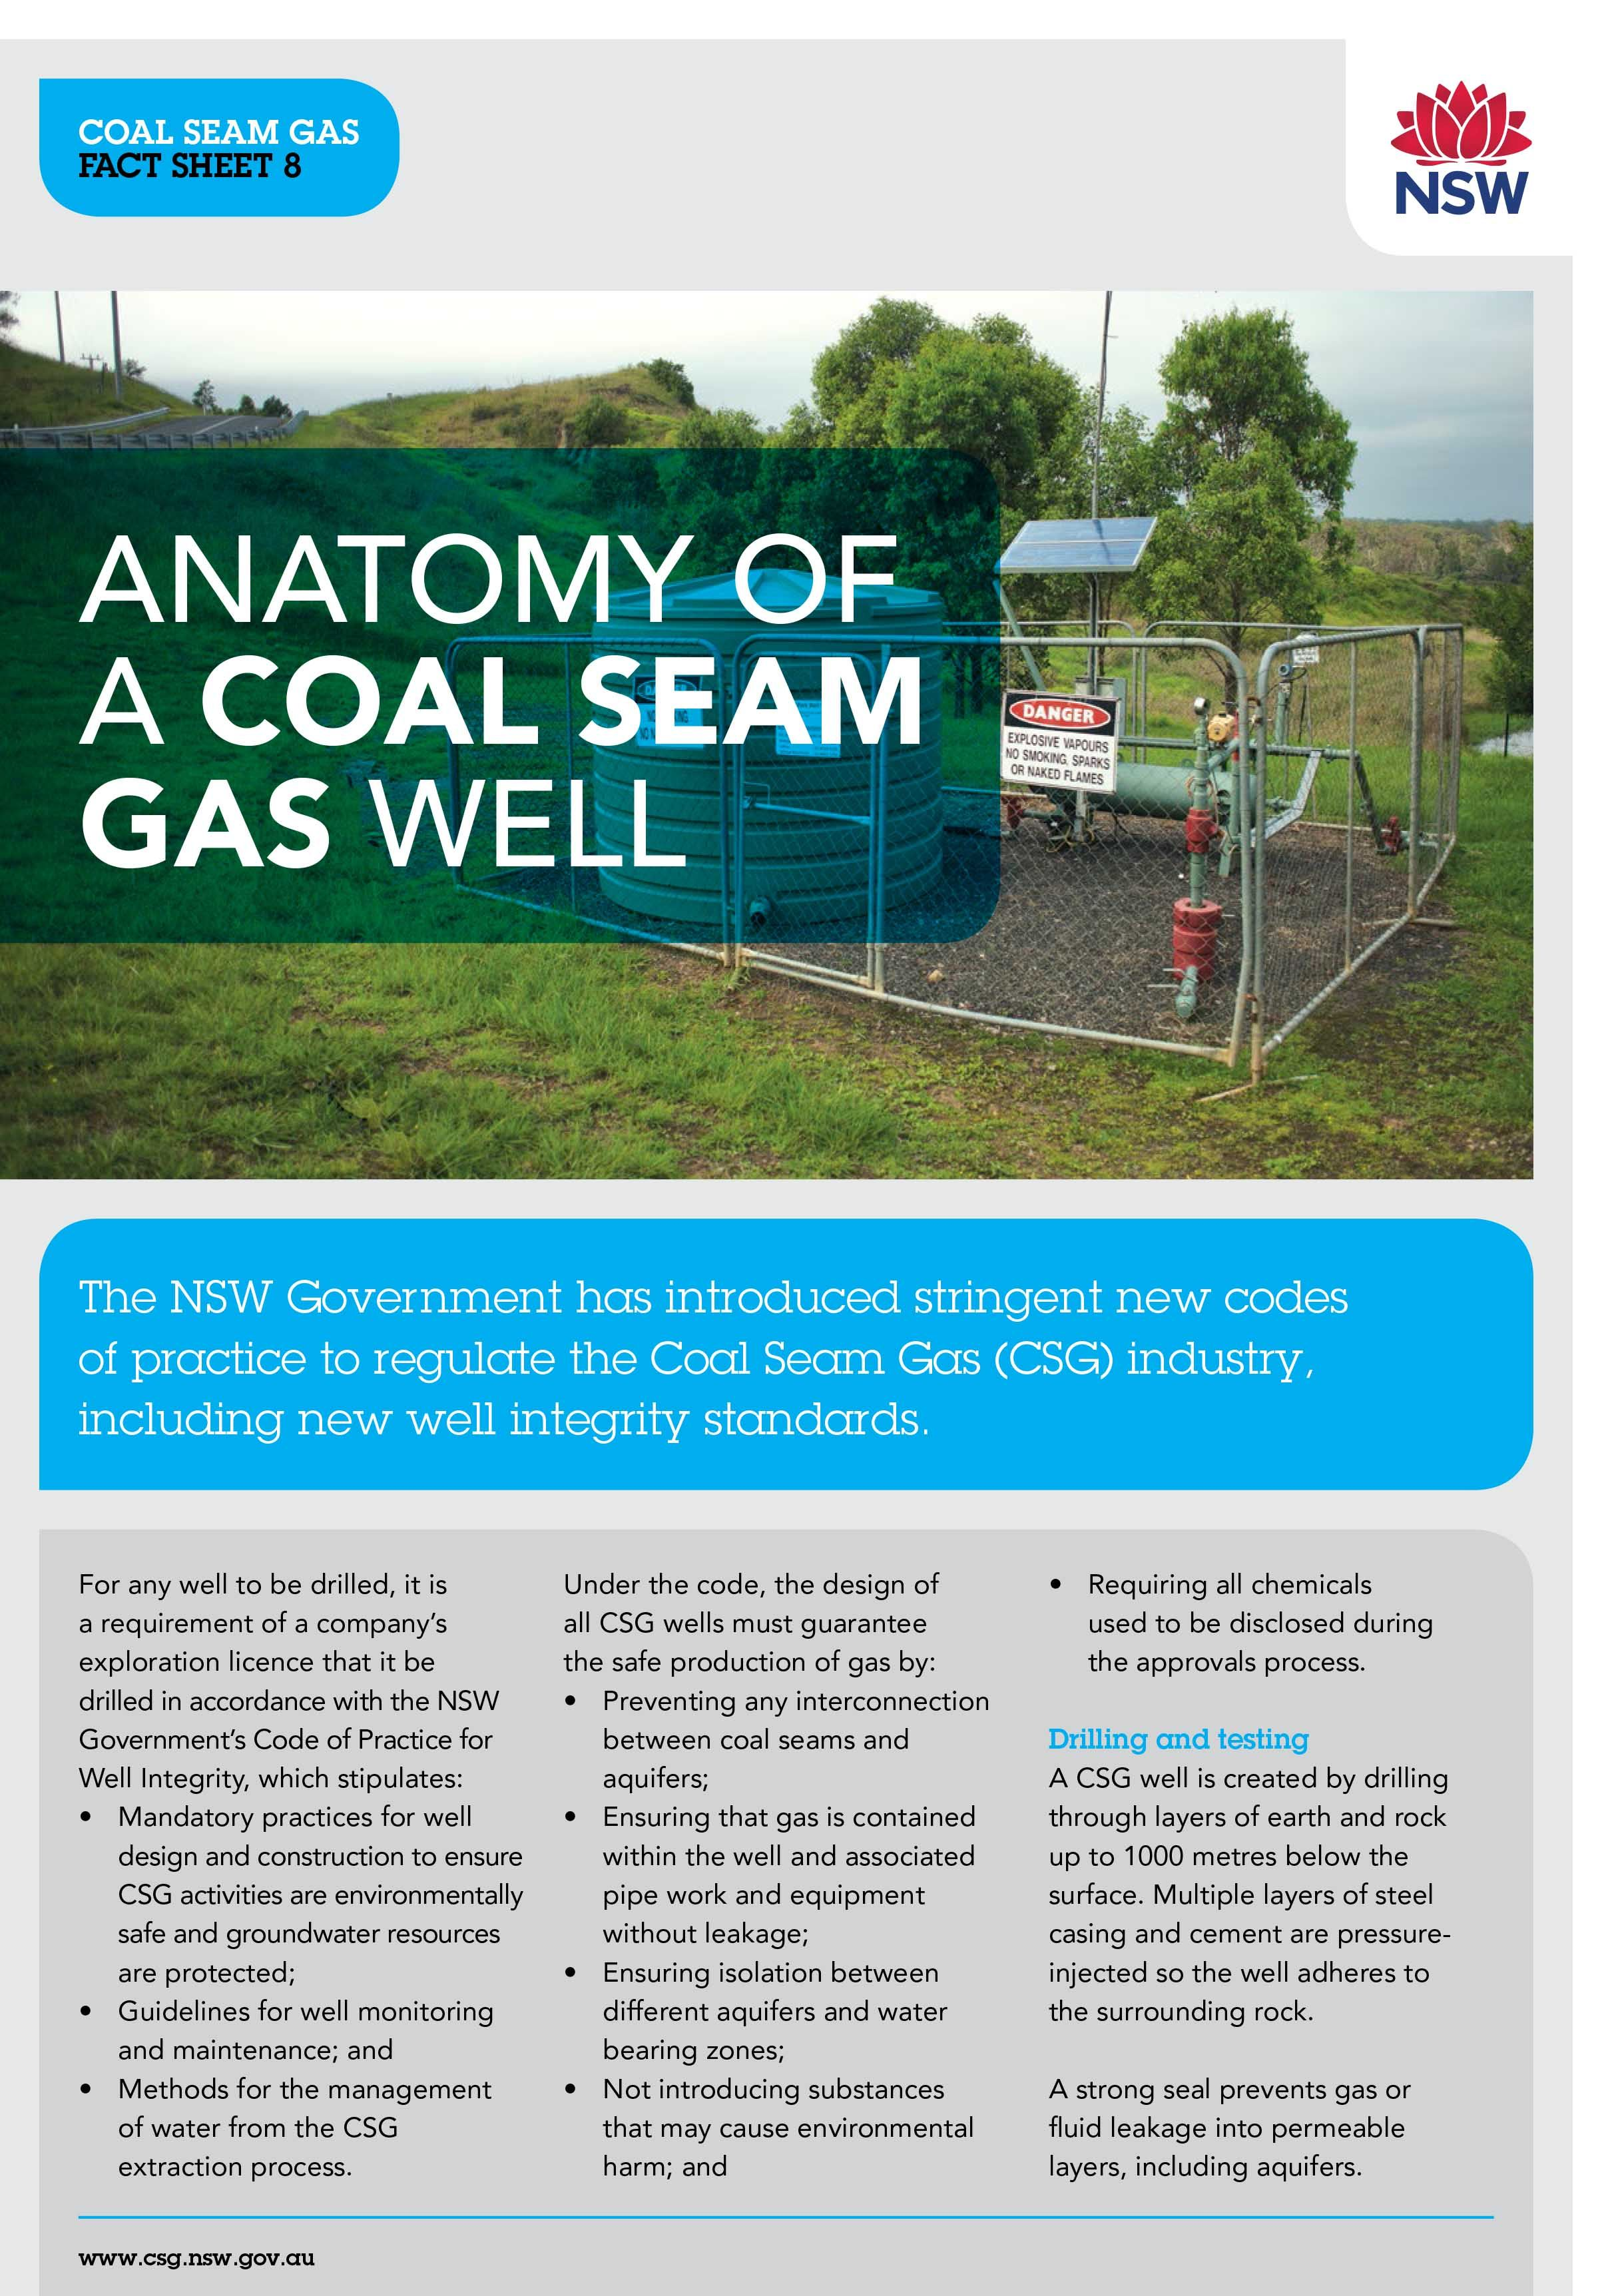 The NSW Government has introduced stringent new codes of practice to regulate the Coal Seam Gas (CSG) industry, including new well integrity standards. For any well to be drilled, it is a requirement of an operator's exploration licence that it be drilled in accordance with the NSW Government's Code of Practice for Well Integrity. Find out more on the NSW Coal Seam Gas website.